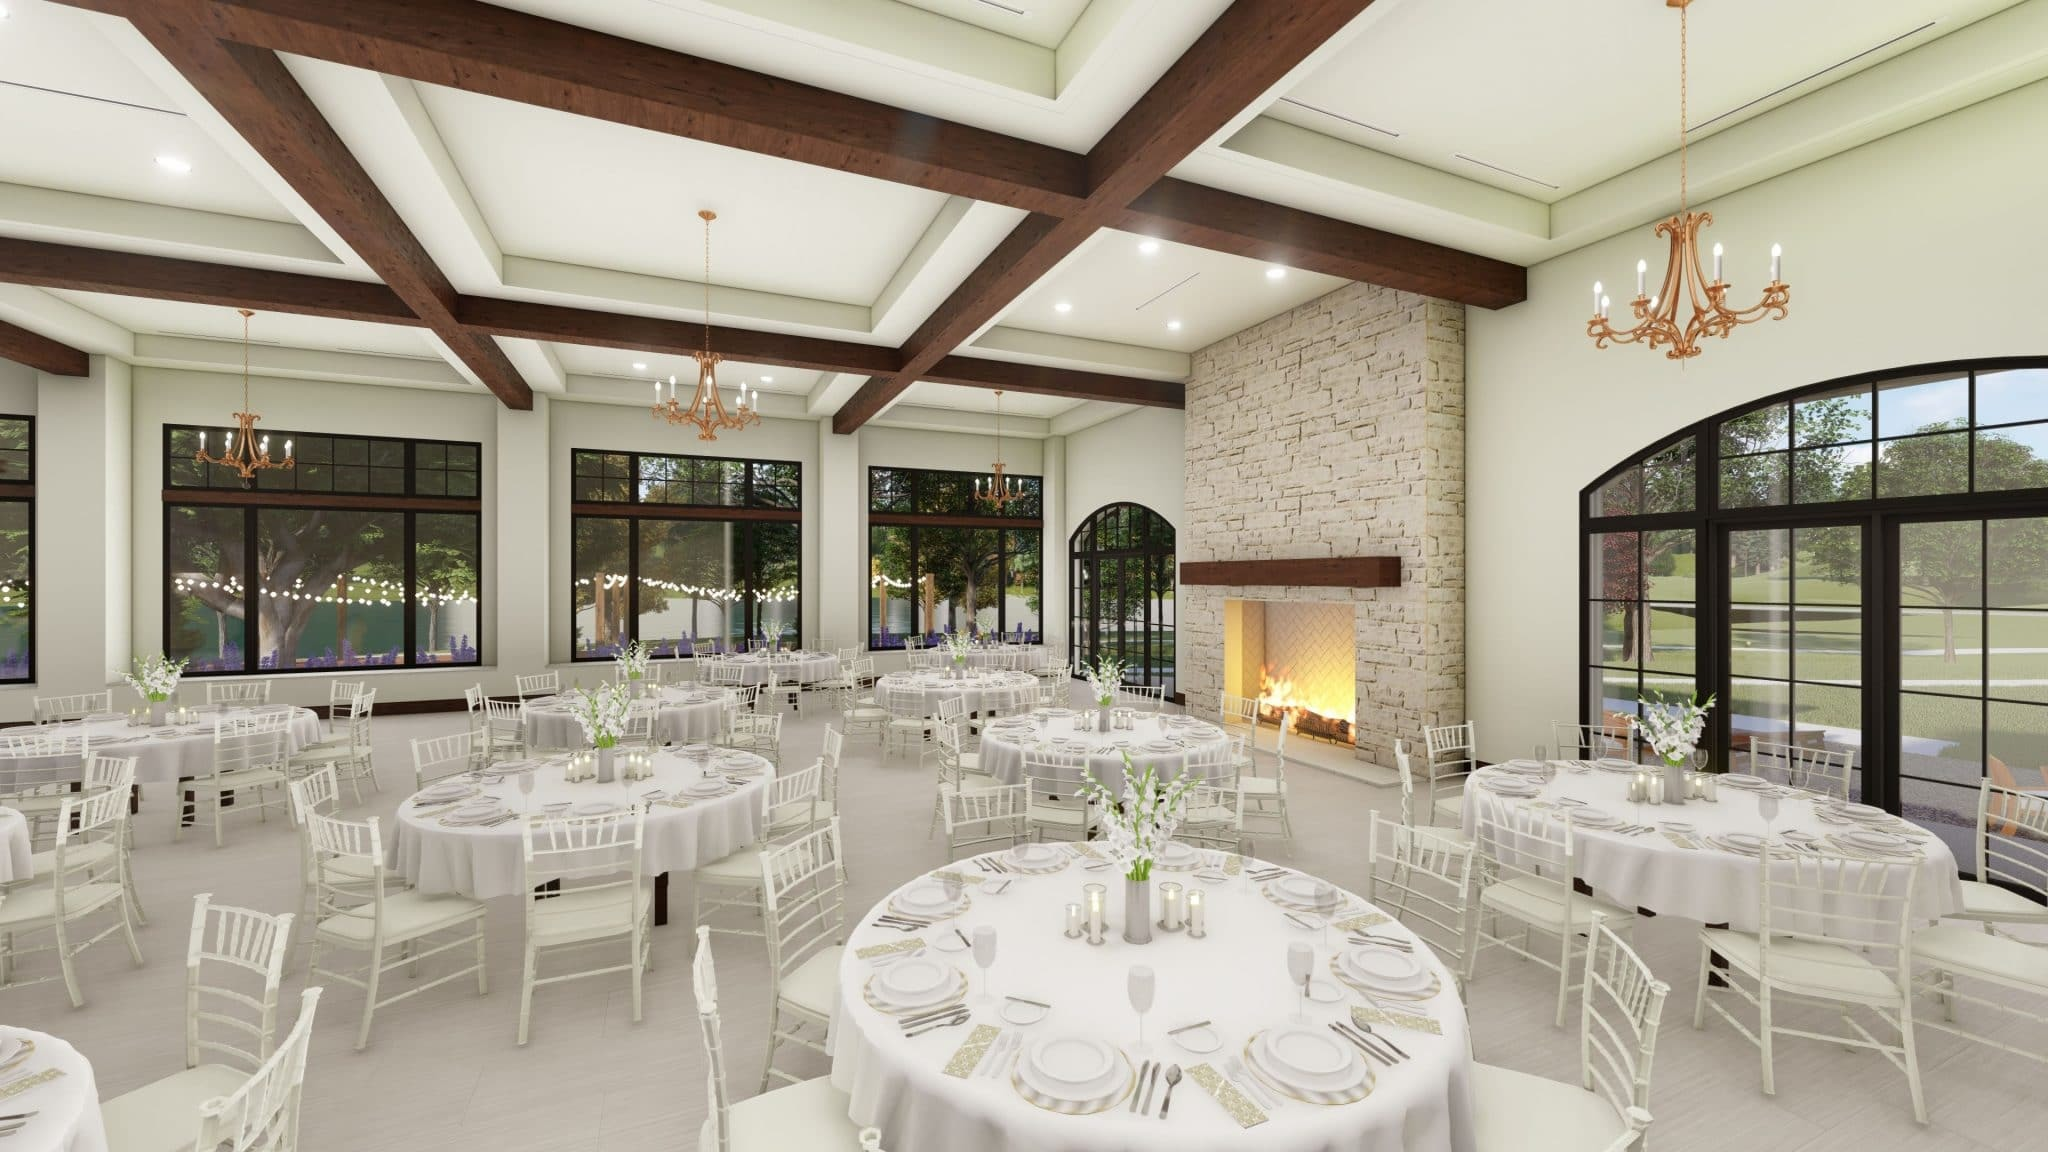 Best Wedding Venue In San Antonio-The Preserve at Canyon Lake